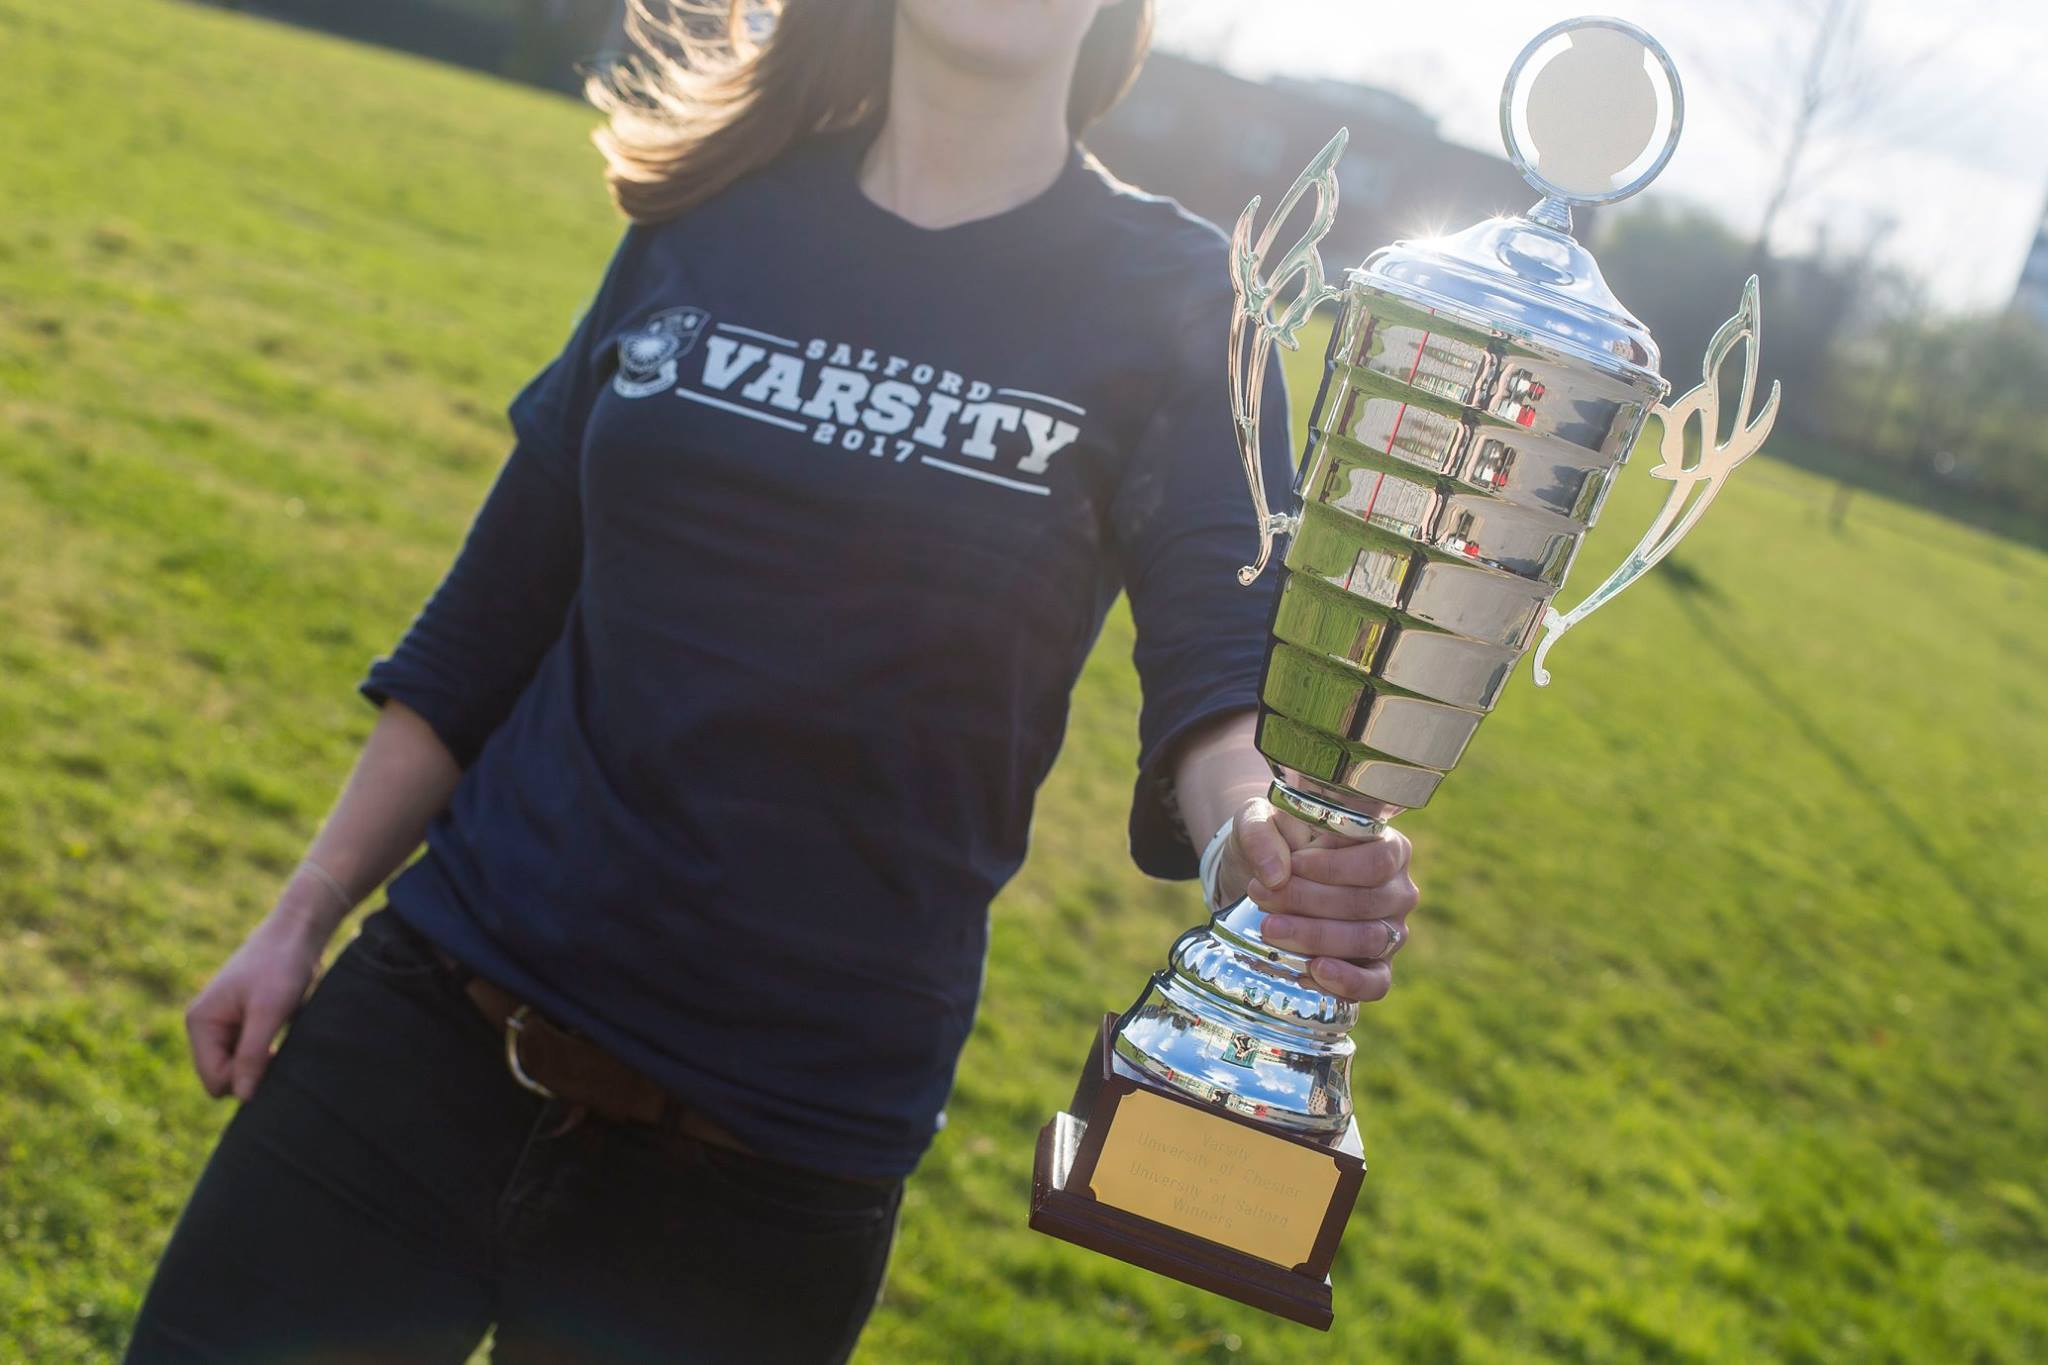 A picture of someone holding the Varsity Trophy